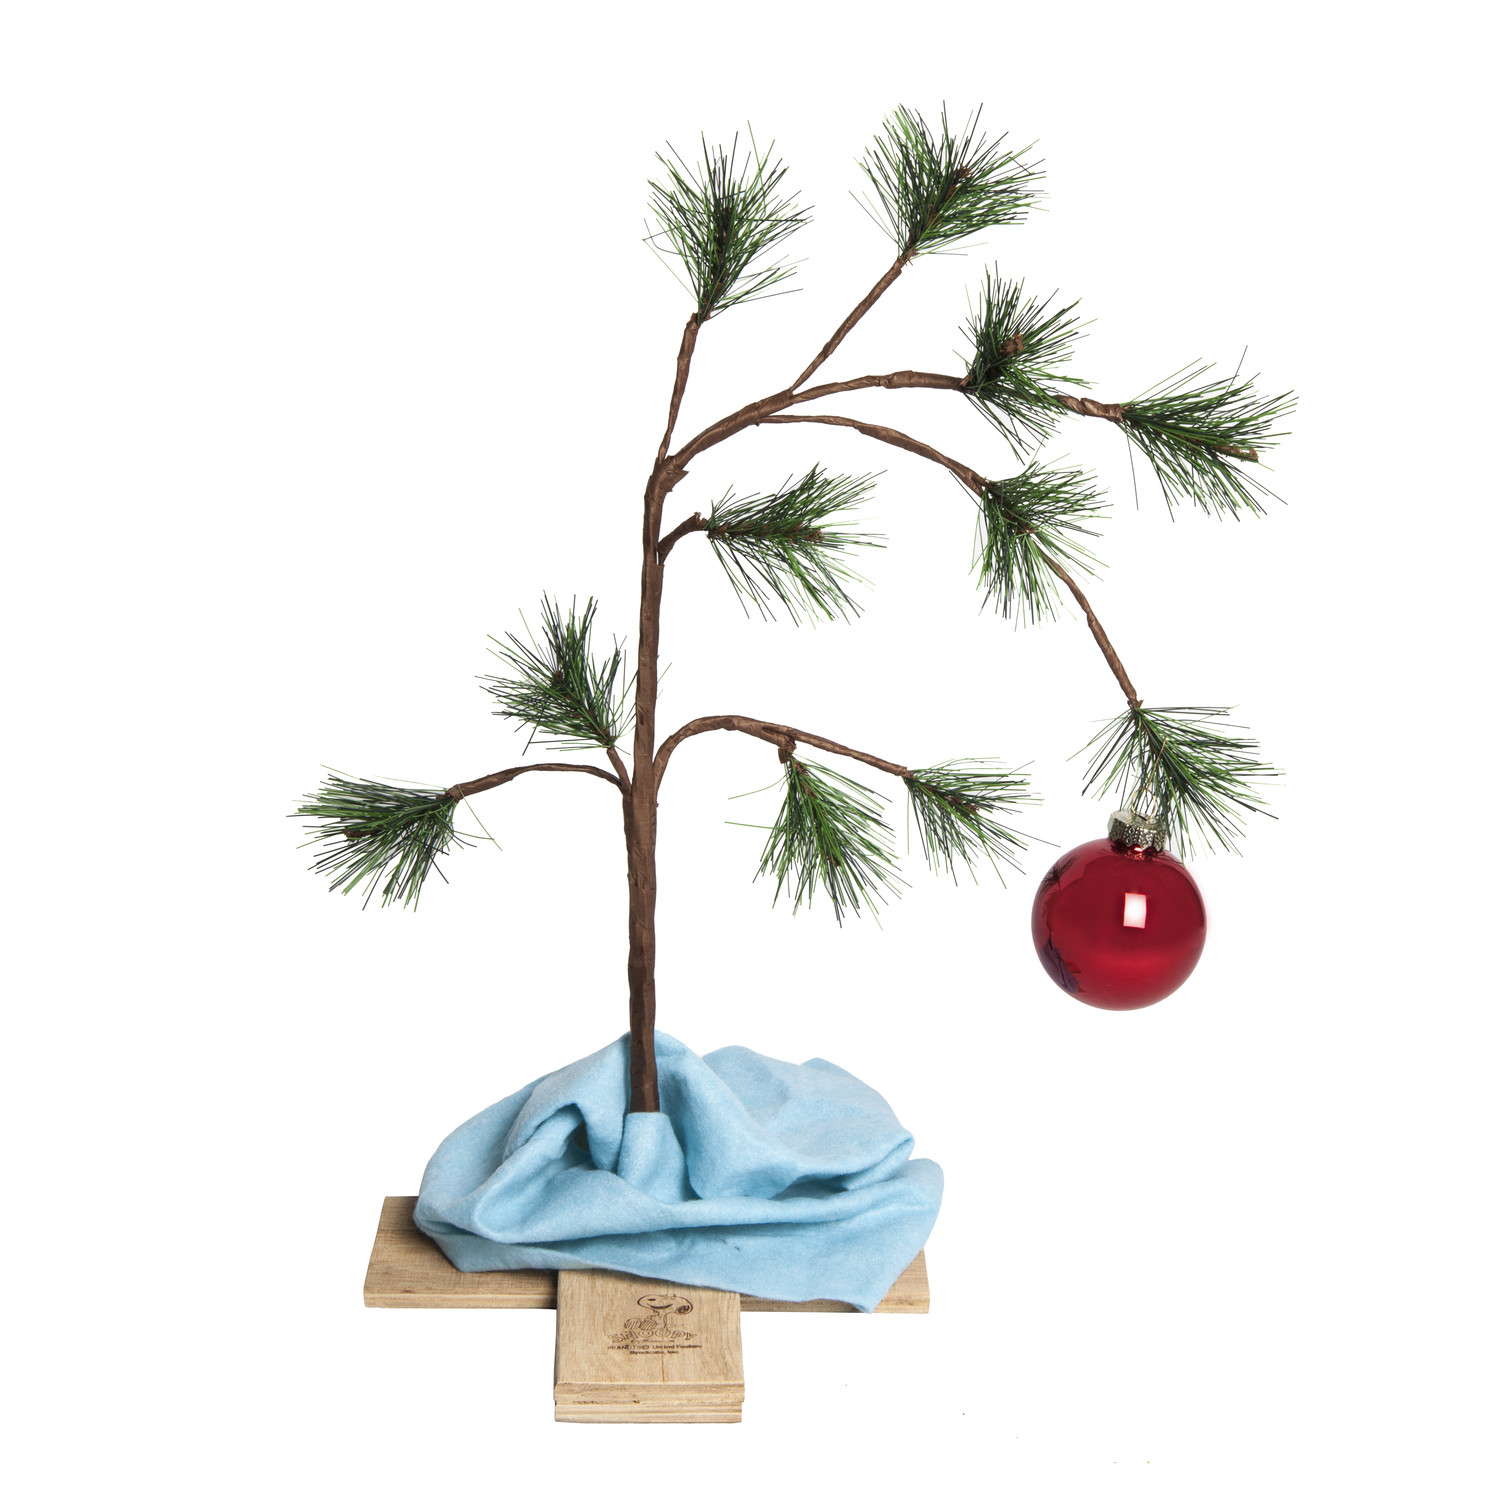 https://i2.wp.com/www.tylerdemarcofoundation.org/wp-content/uploads/2013/12/Charlie-Brown-Chrismas-Tree-With-Blanket-IMG_8035.jpg